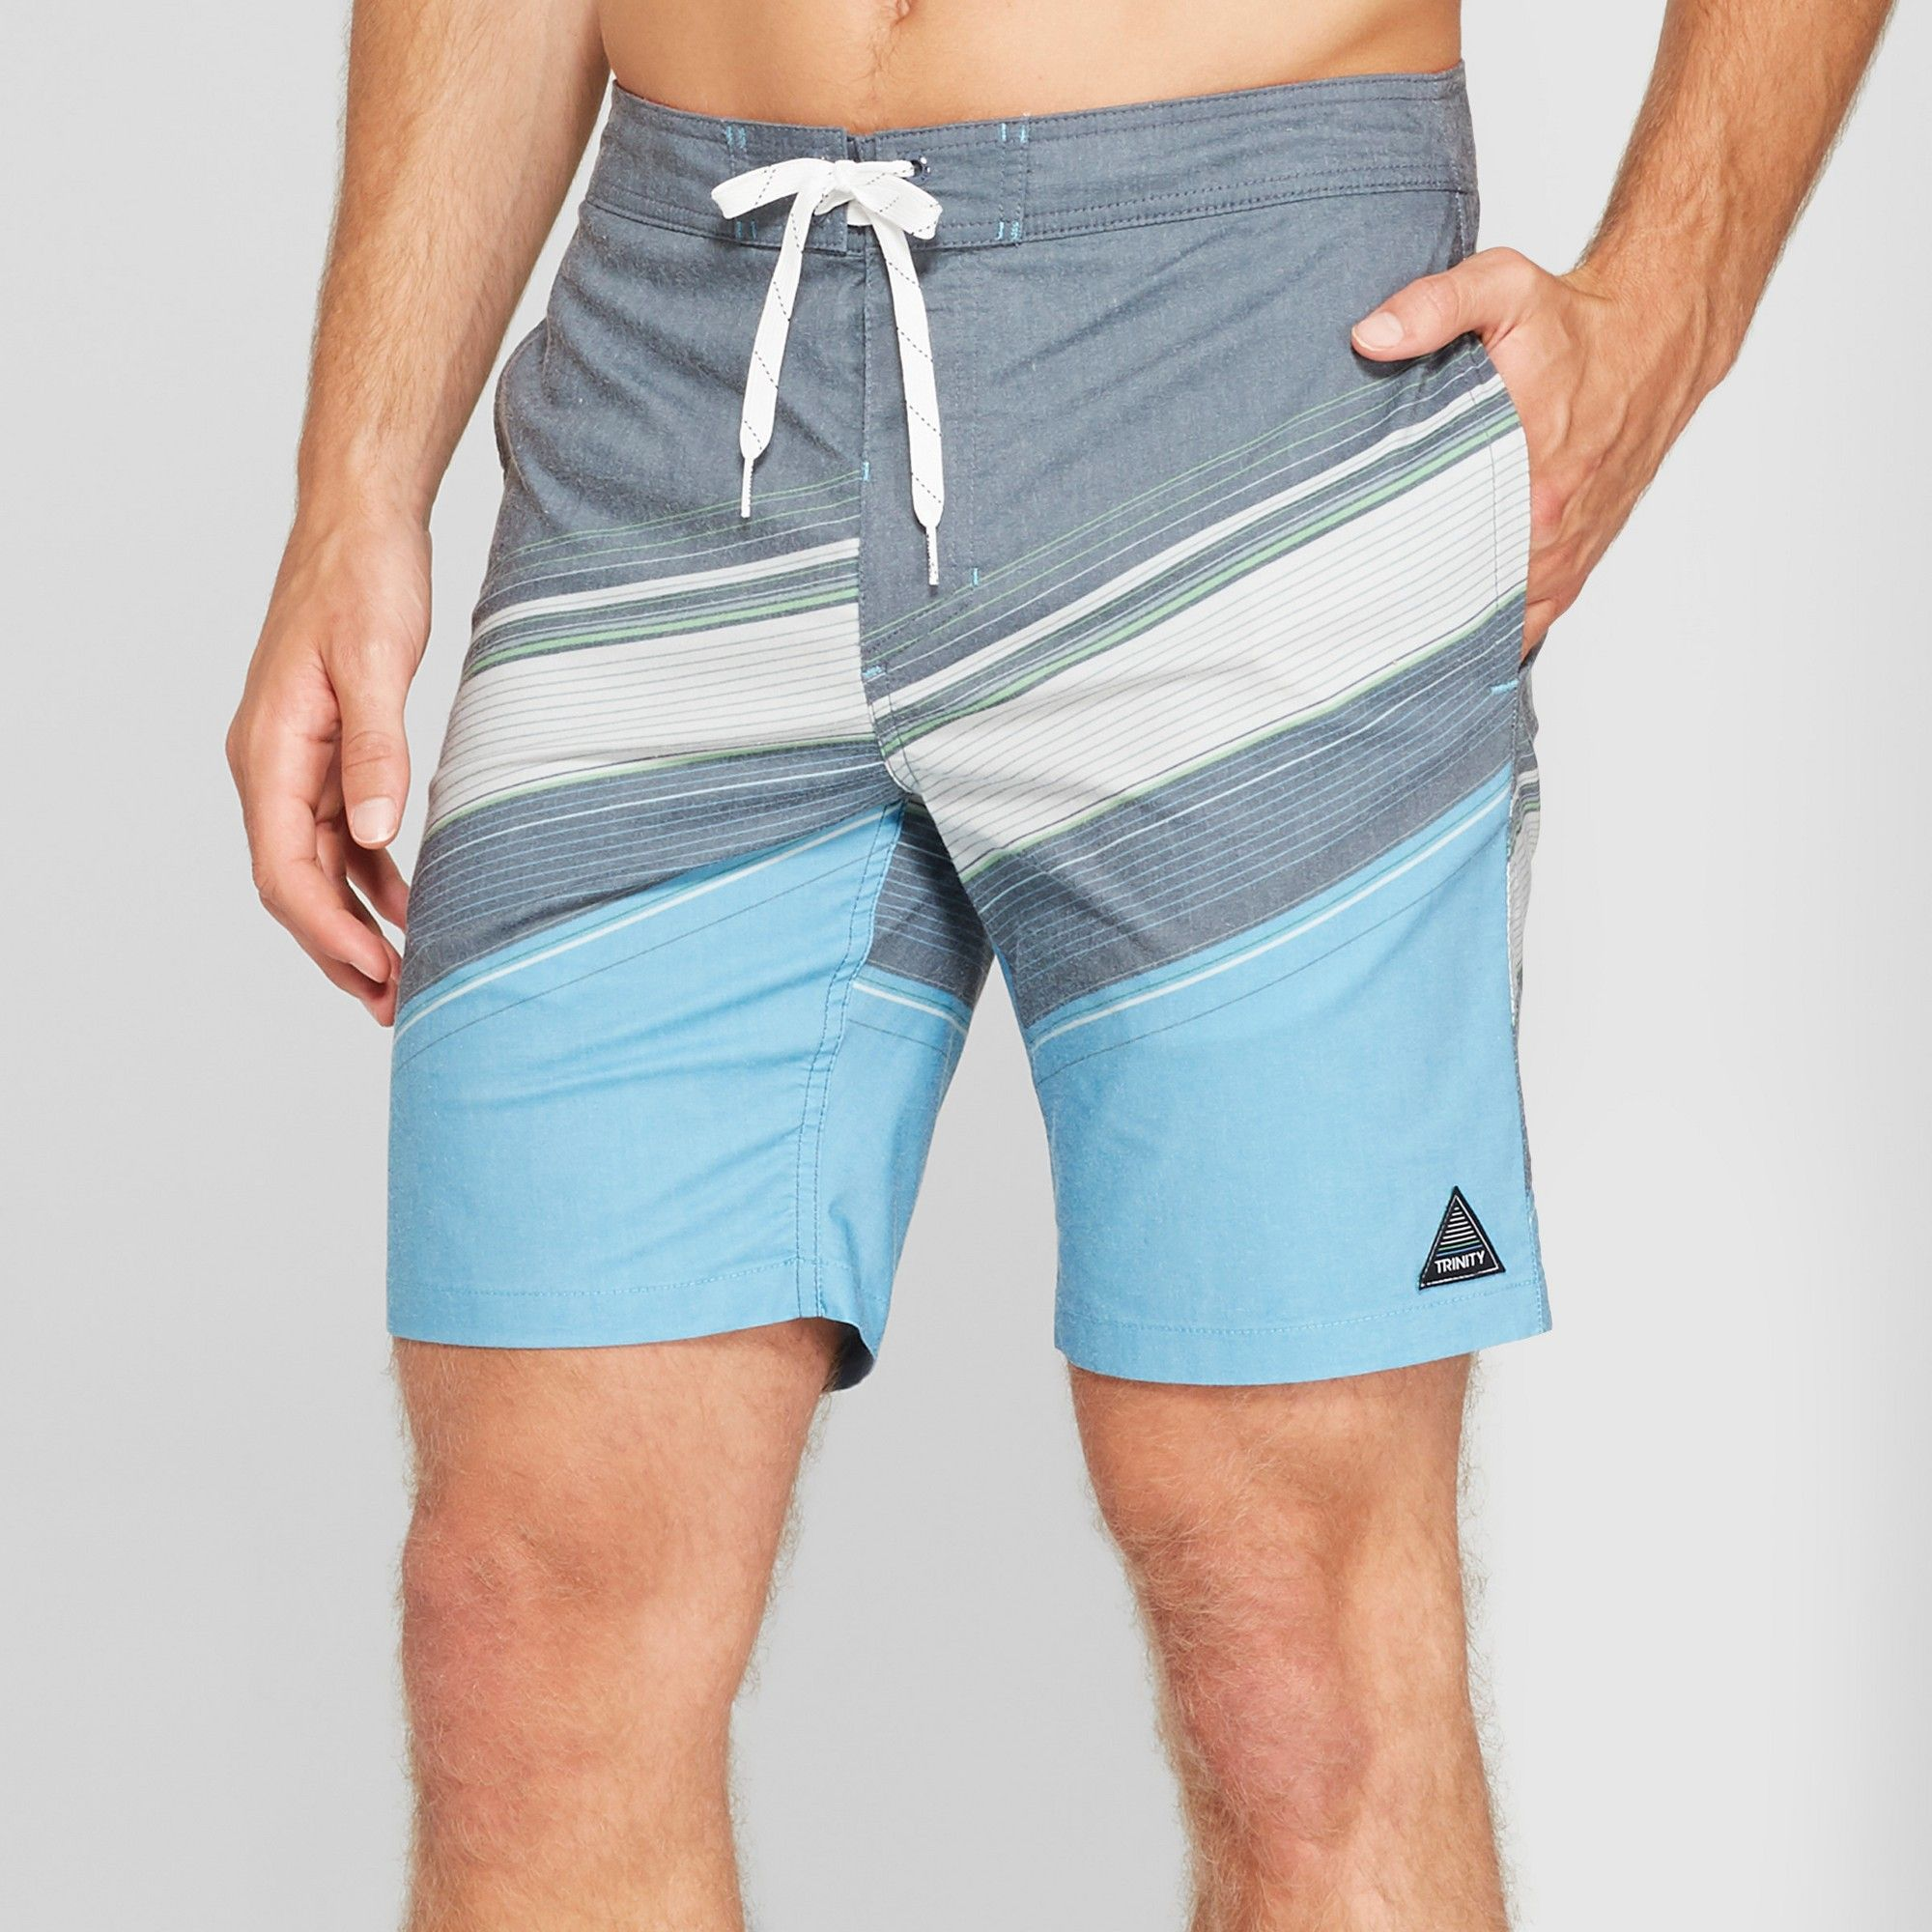 ff74eecdee Trinity Collective Men's Striped 8.5 Digger Board Shorts - Blue 40 ...